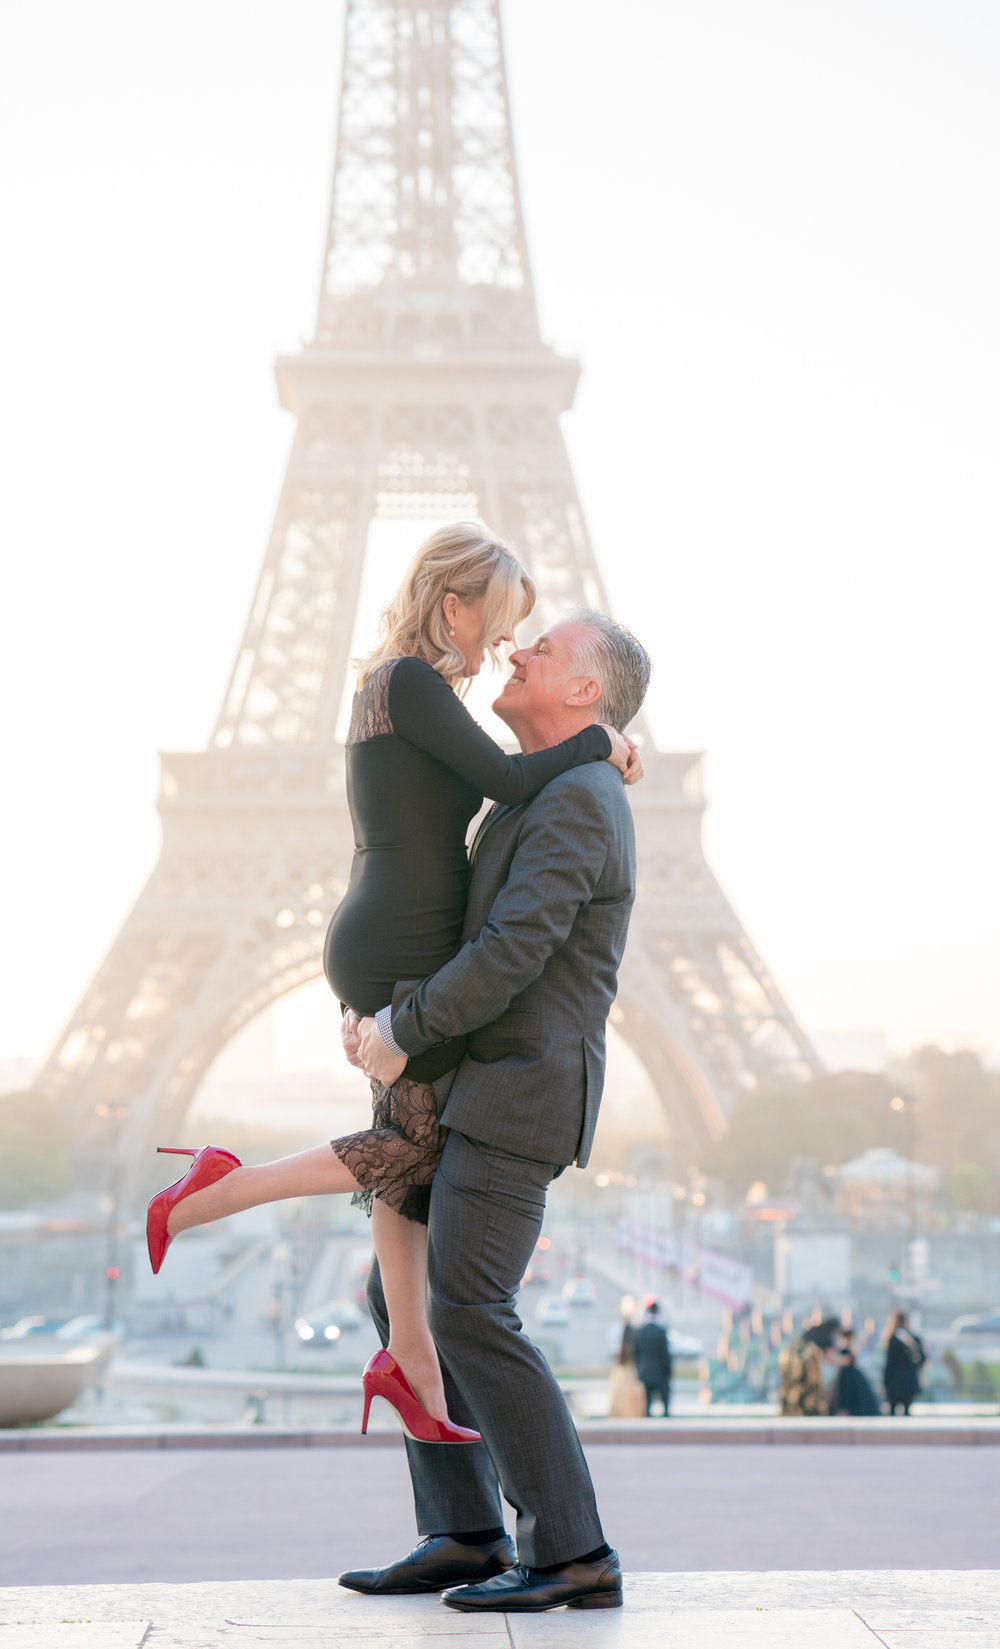 beautiful sunrise couples anniversary photo shoot at the eiffel tower in paris france